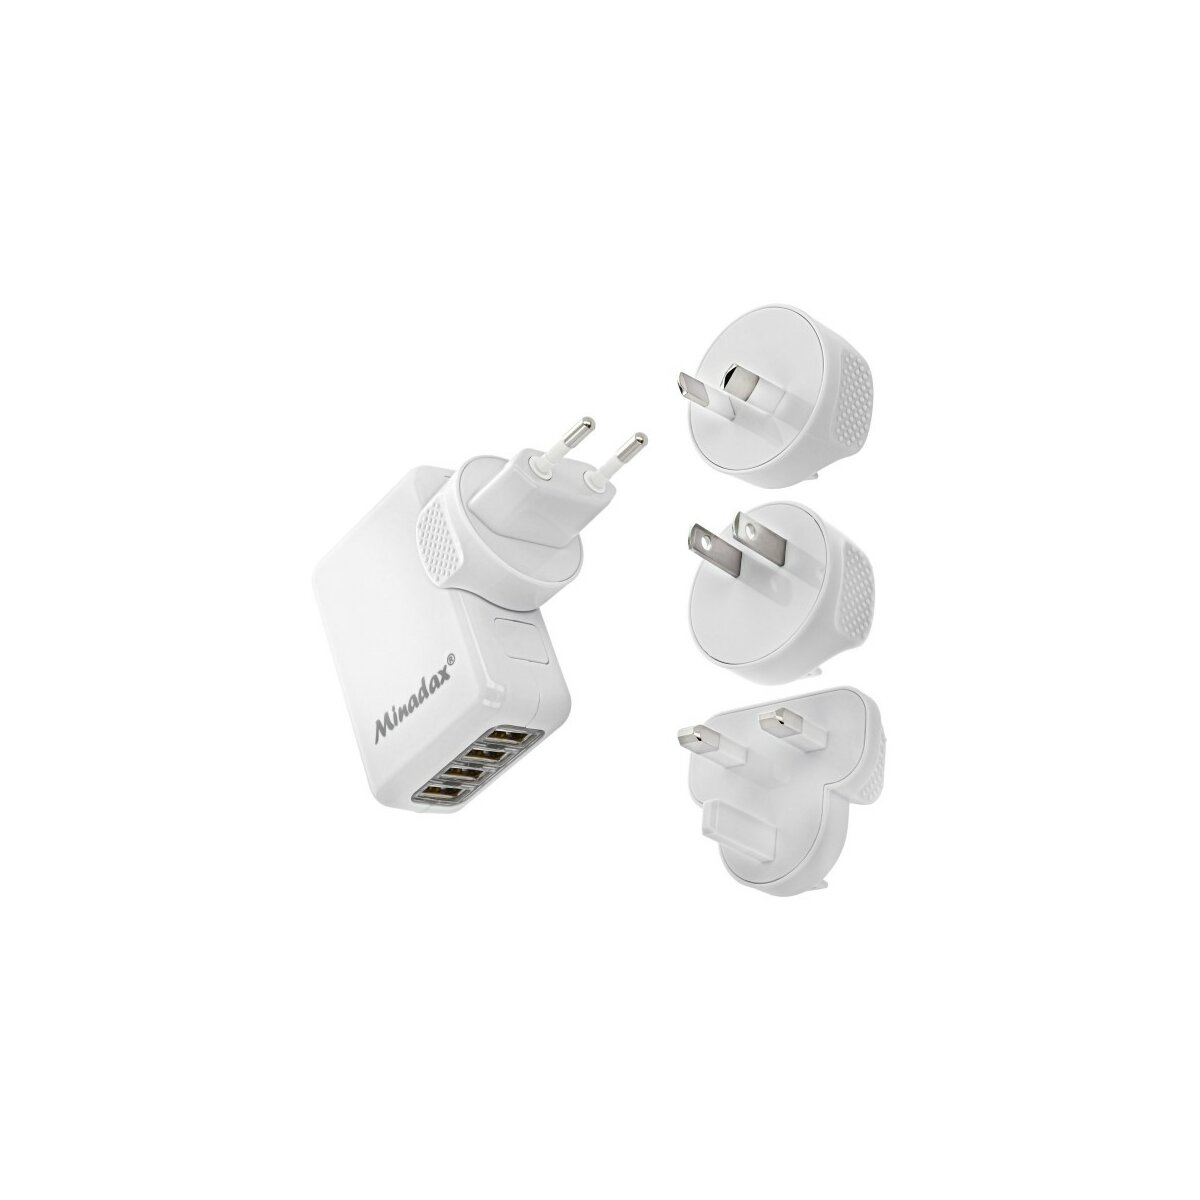 Minadax® Travel Charger SP-4U